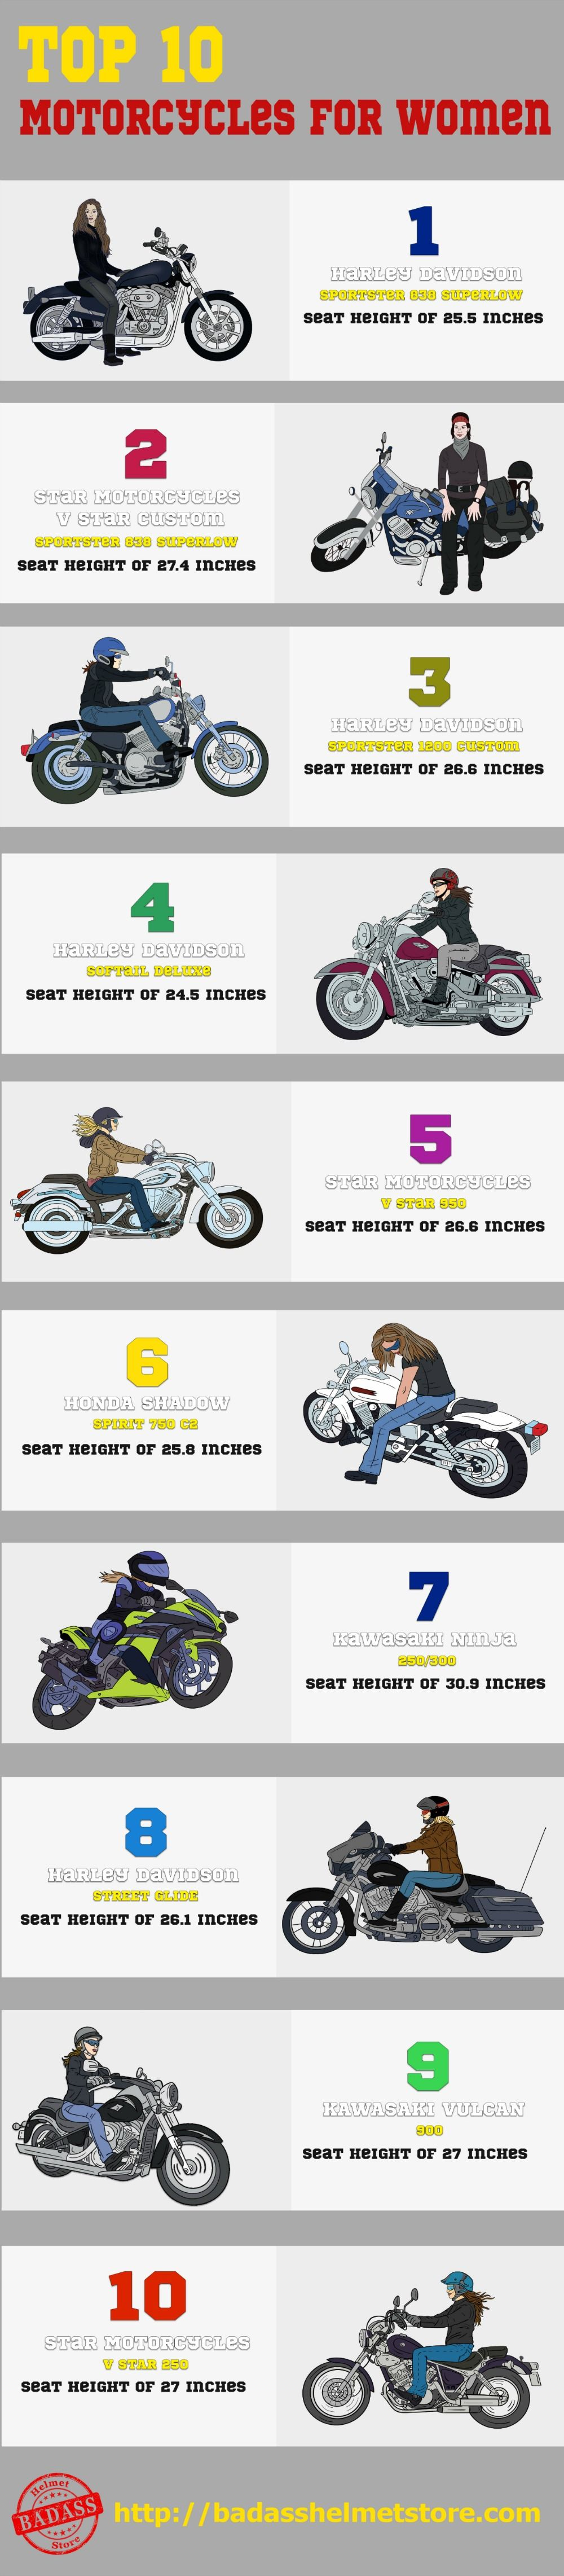 Top 10 Motorcycles For Women Infographic Best Motorcycle For